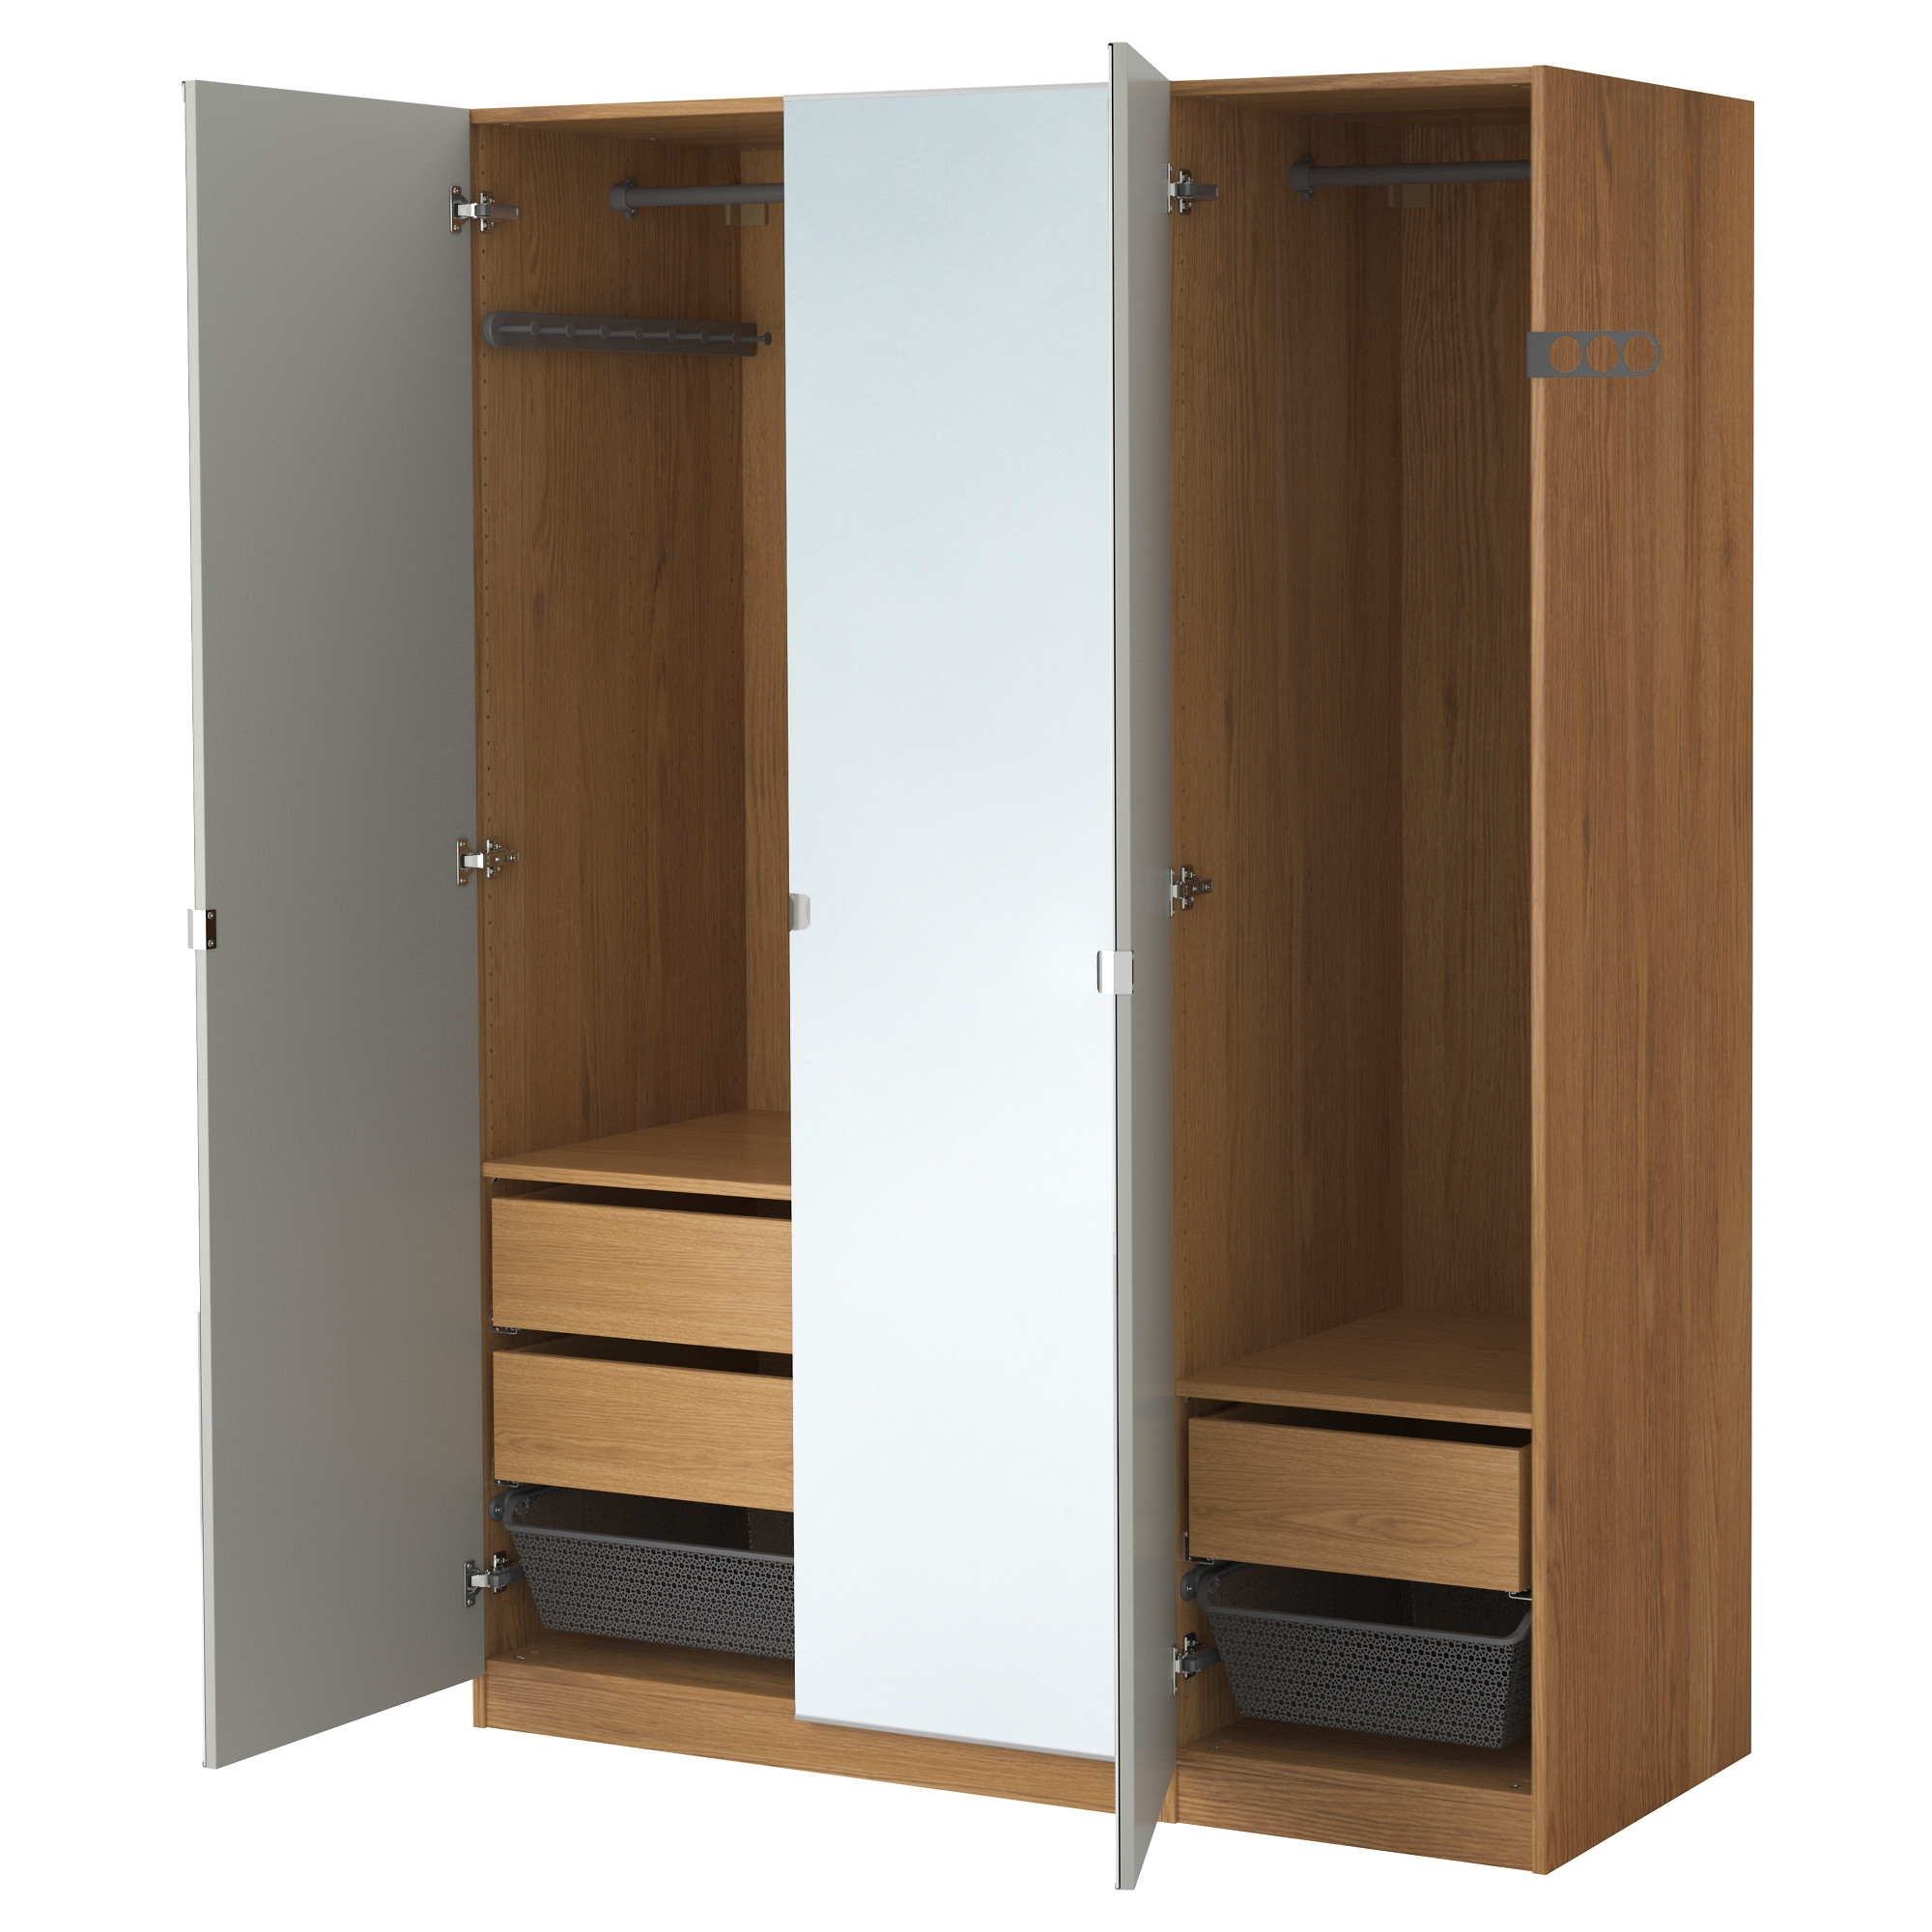 Wardrobes Ikea Ireland Dublin Pertaining To Mobile Wardrobe Cabinets (Image 25 of 25)